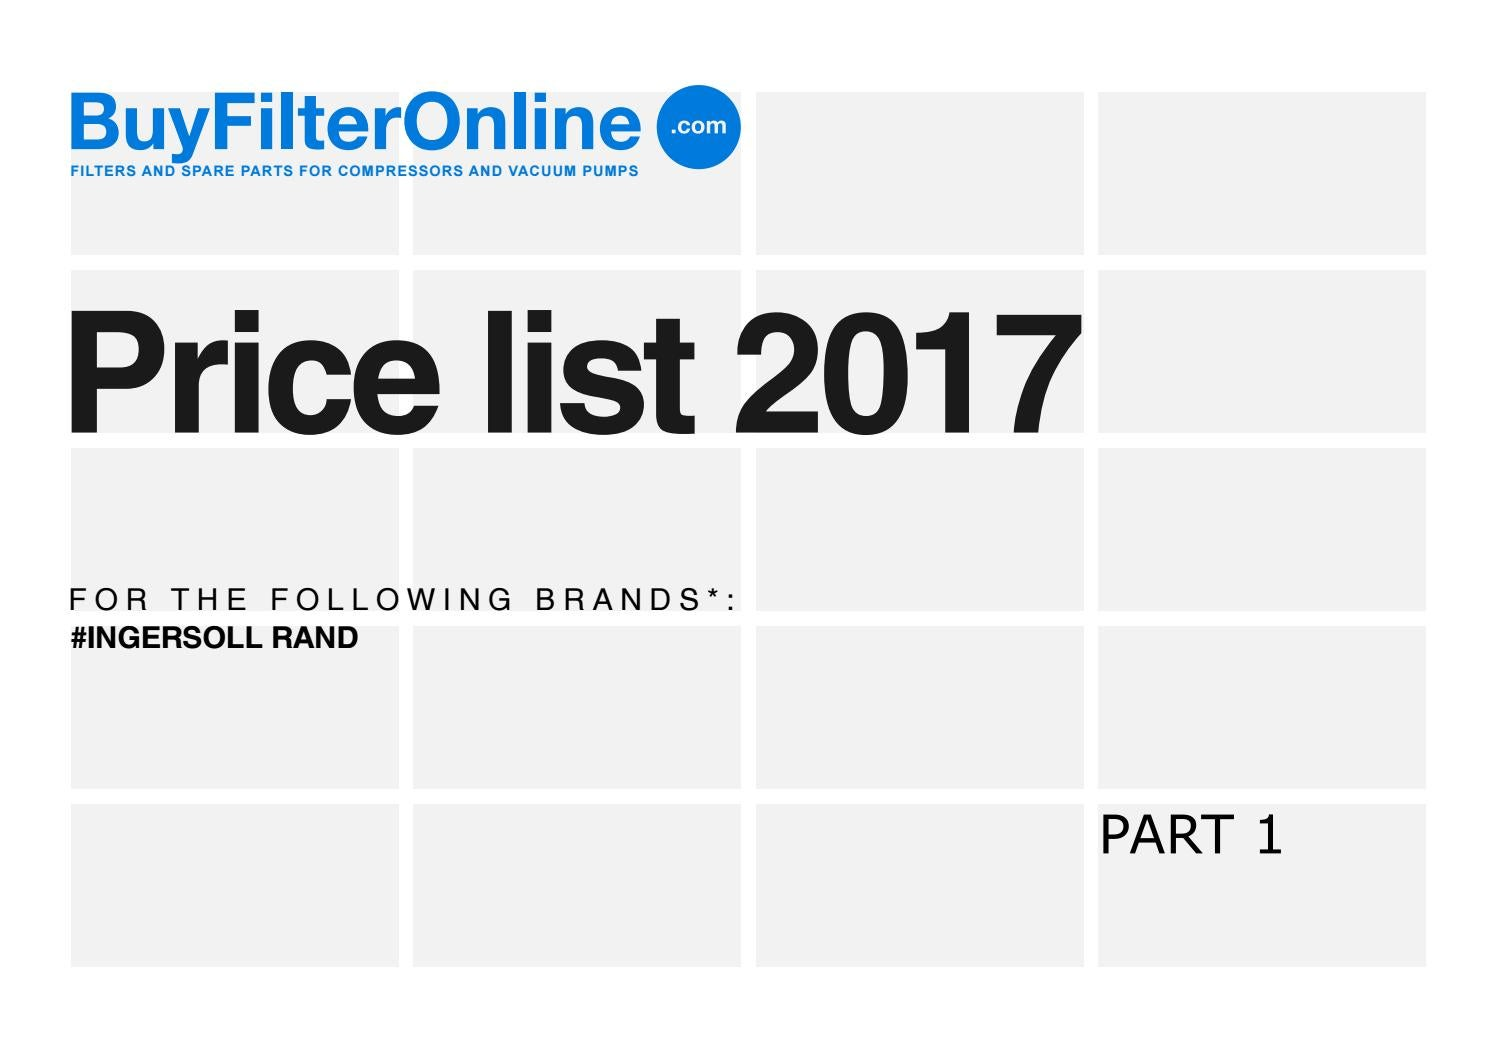 hight resolution of buyfilteronline com filters for compressors price list 2017 ingersoll rand part 1 by oilservice issuu